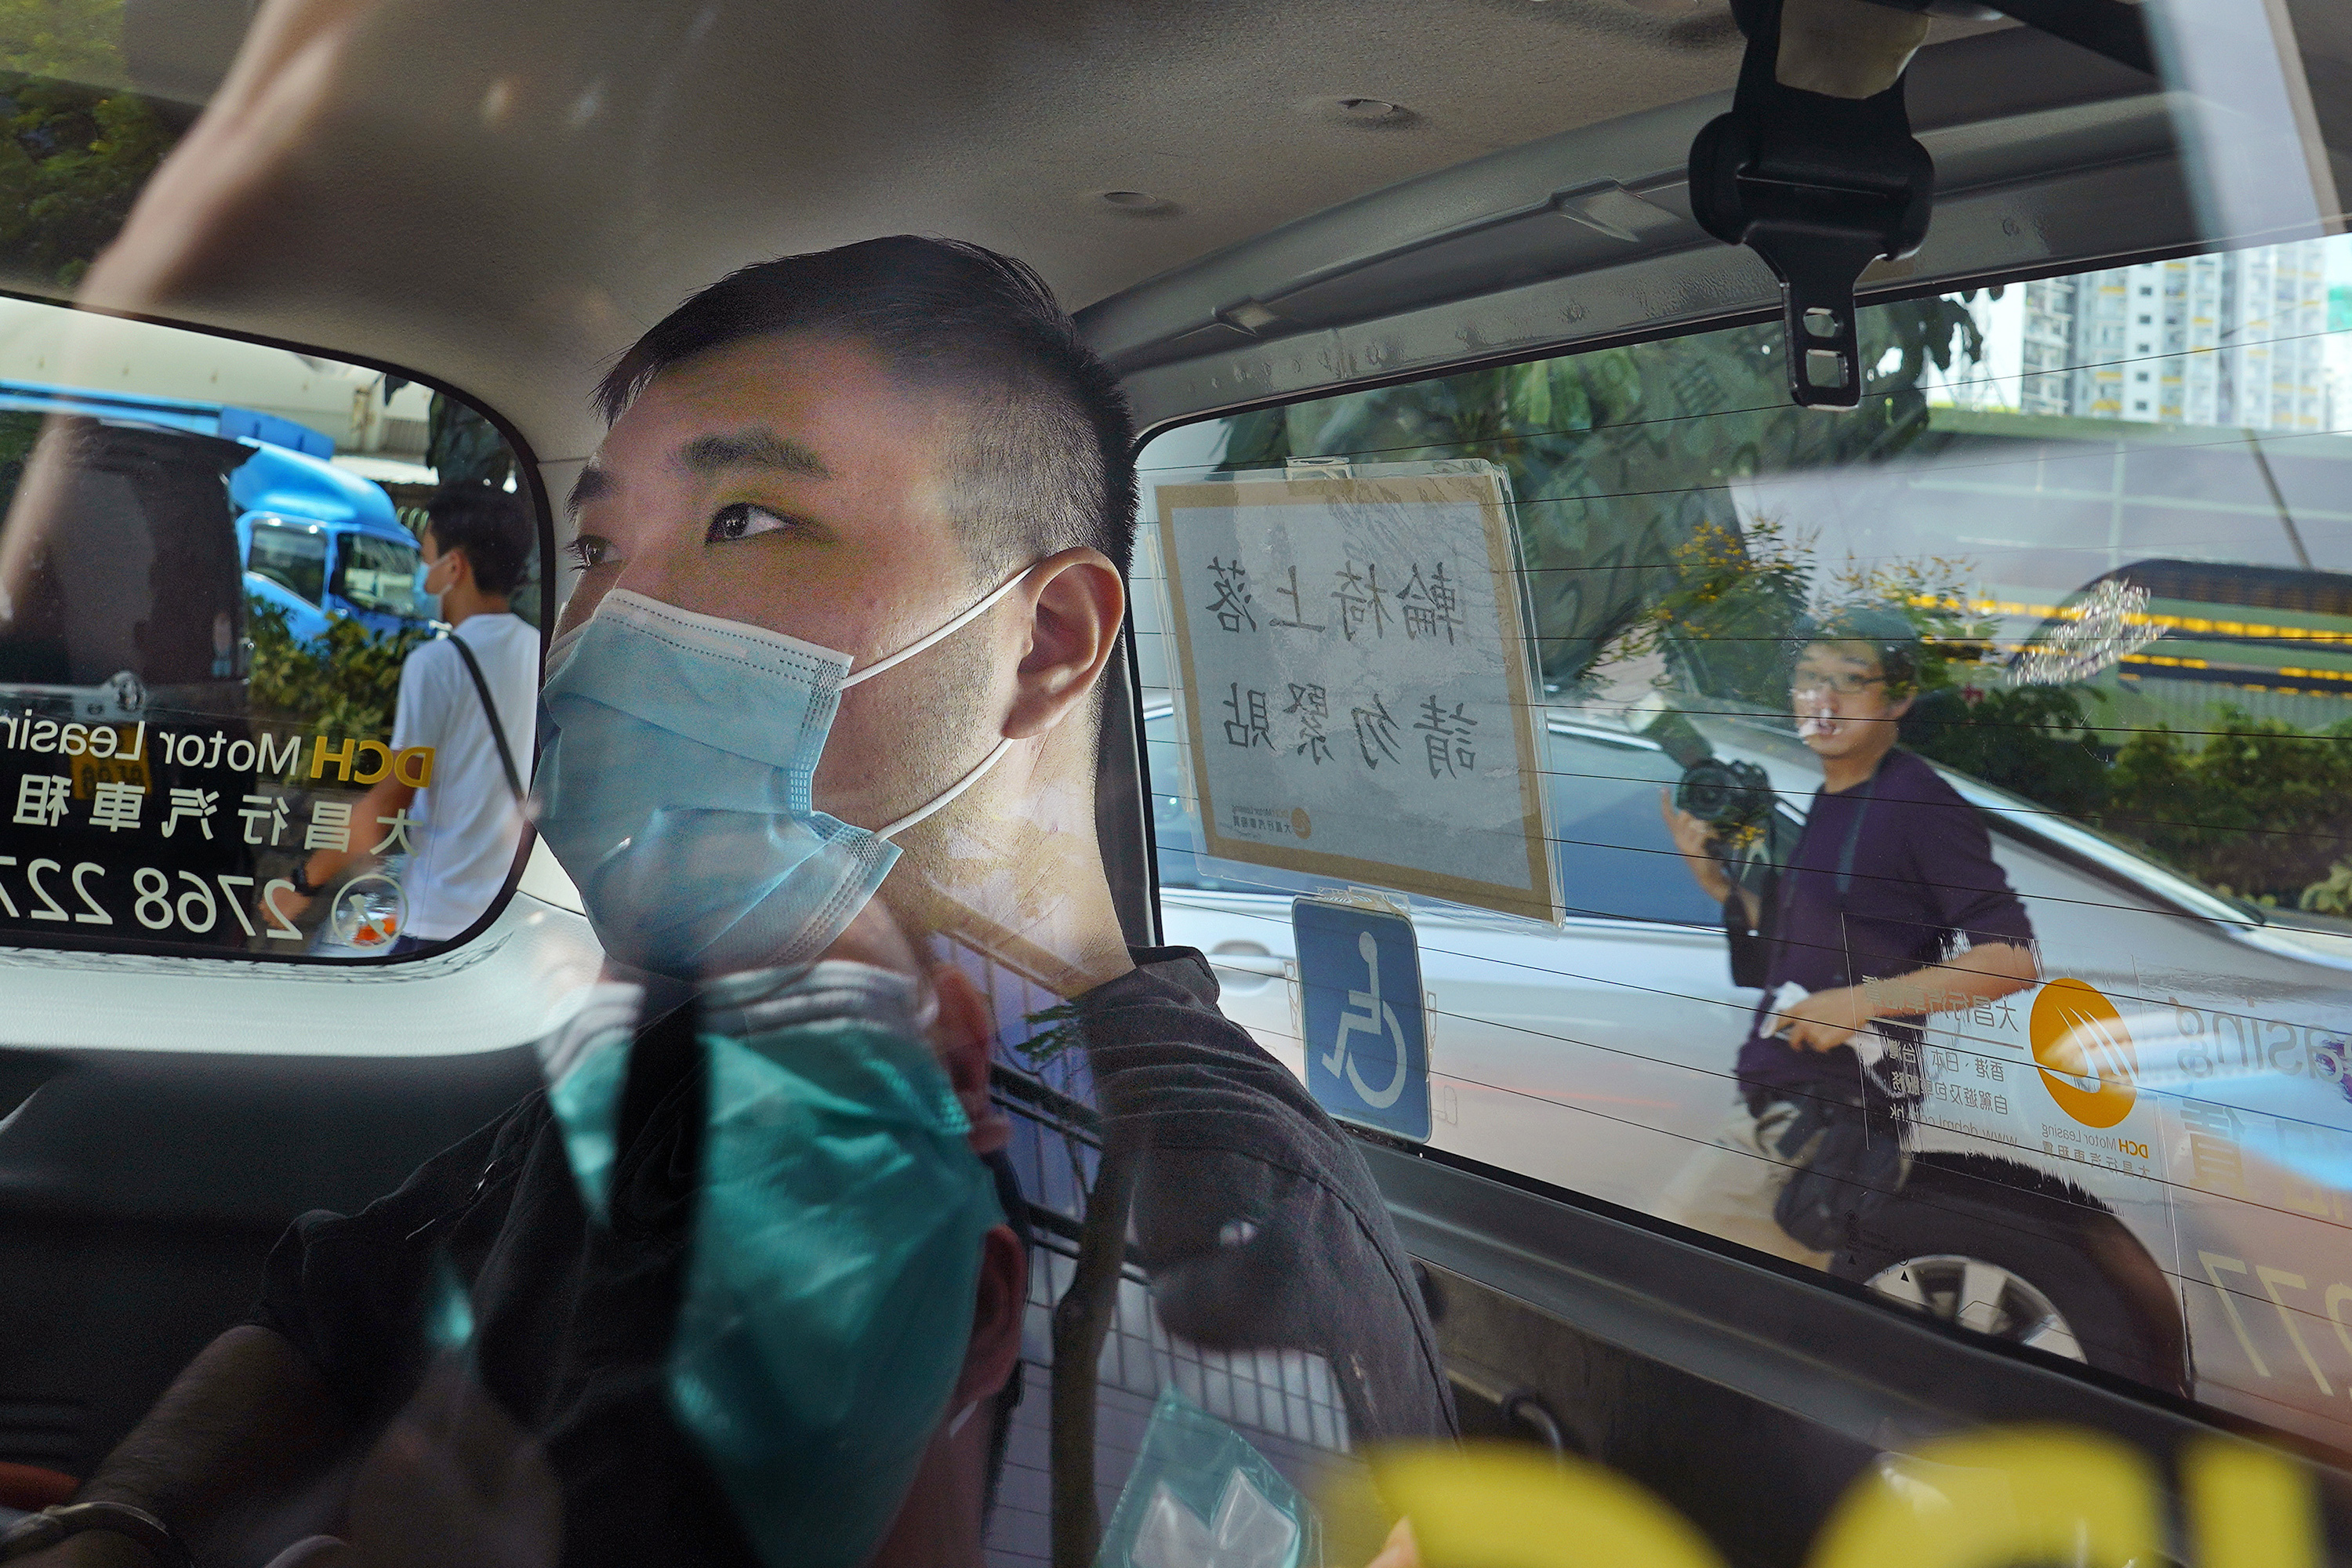 Hong Kong protester sentenced to 9 years in prison in first national security case